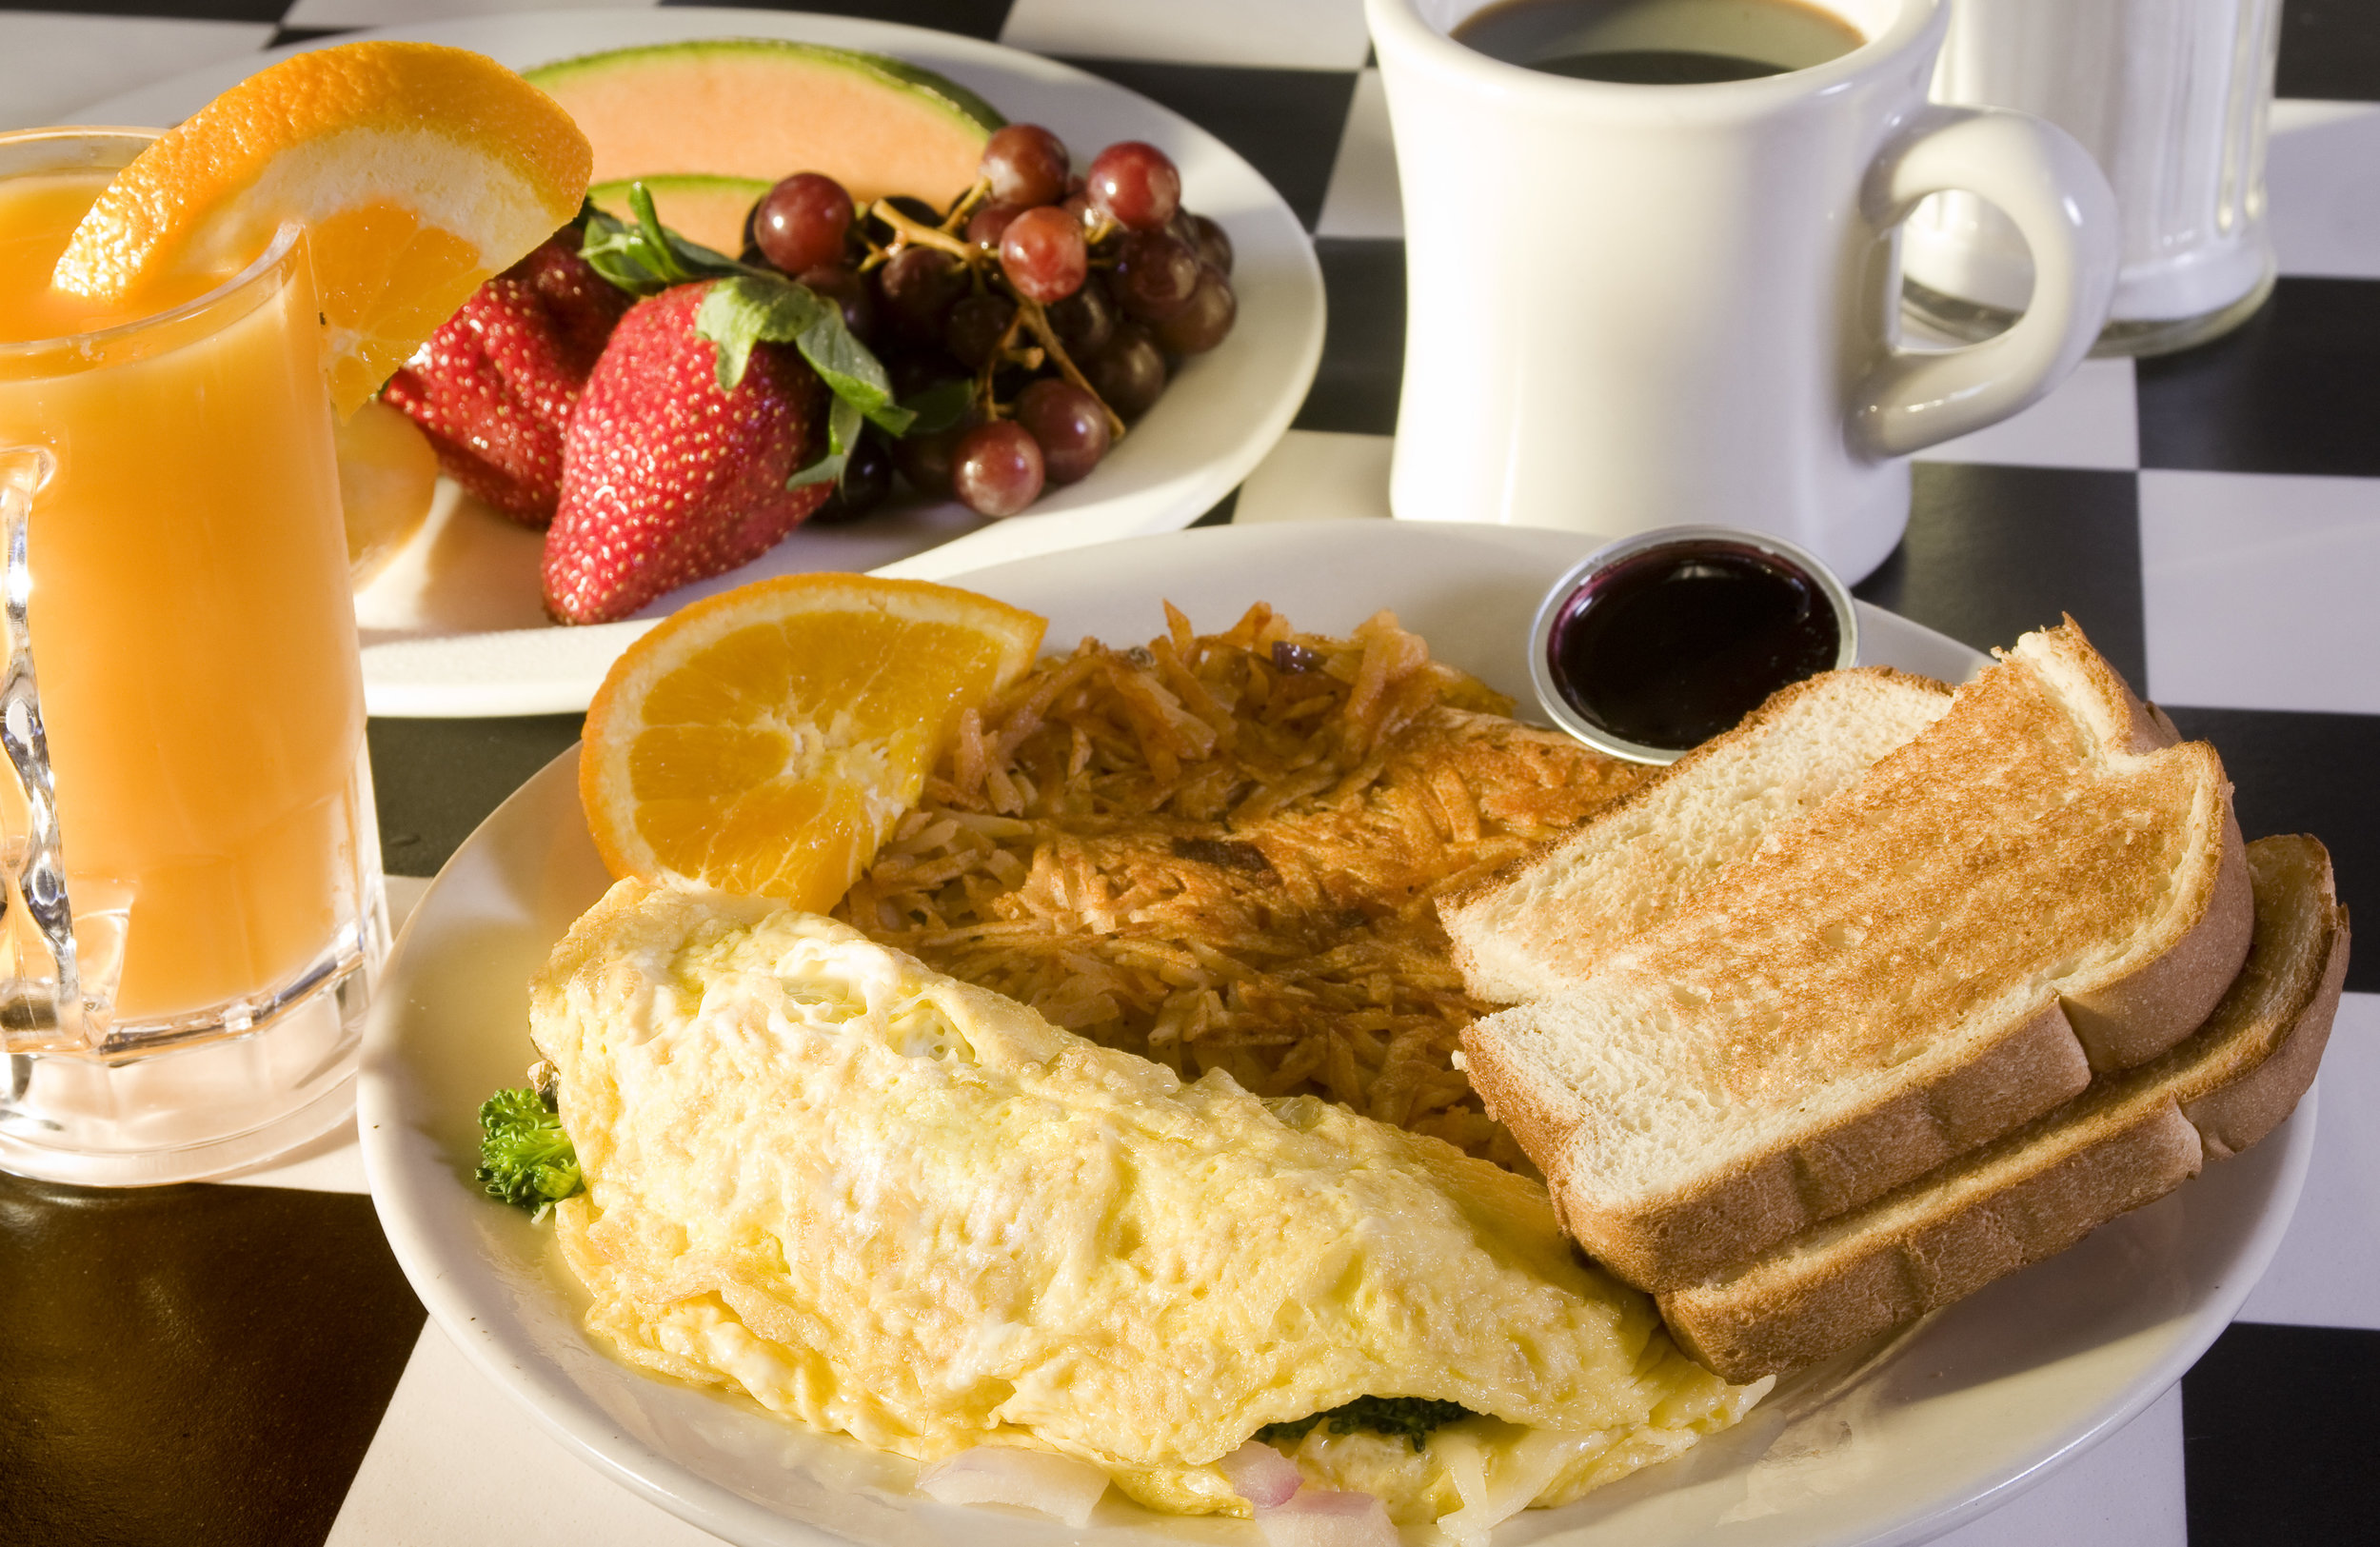 Plantation-cafe-and-Deli-Hilton-Head-Island-SC-Breakfast-01.jpg